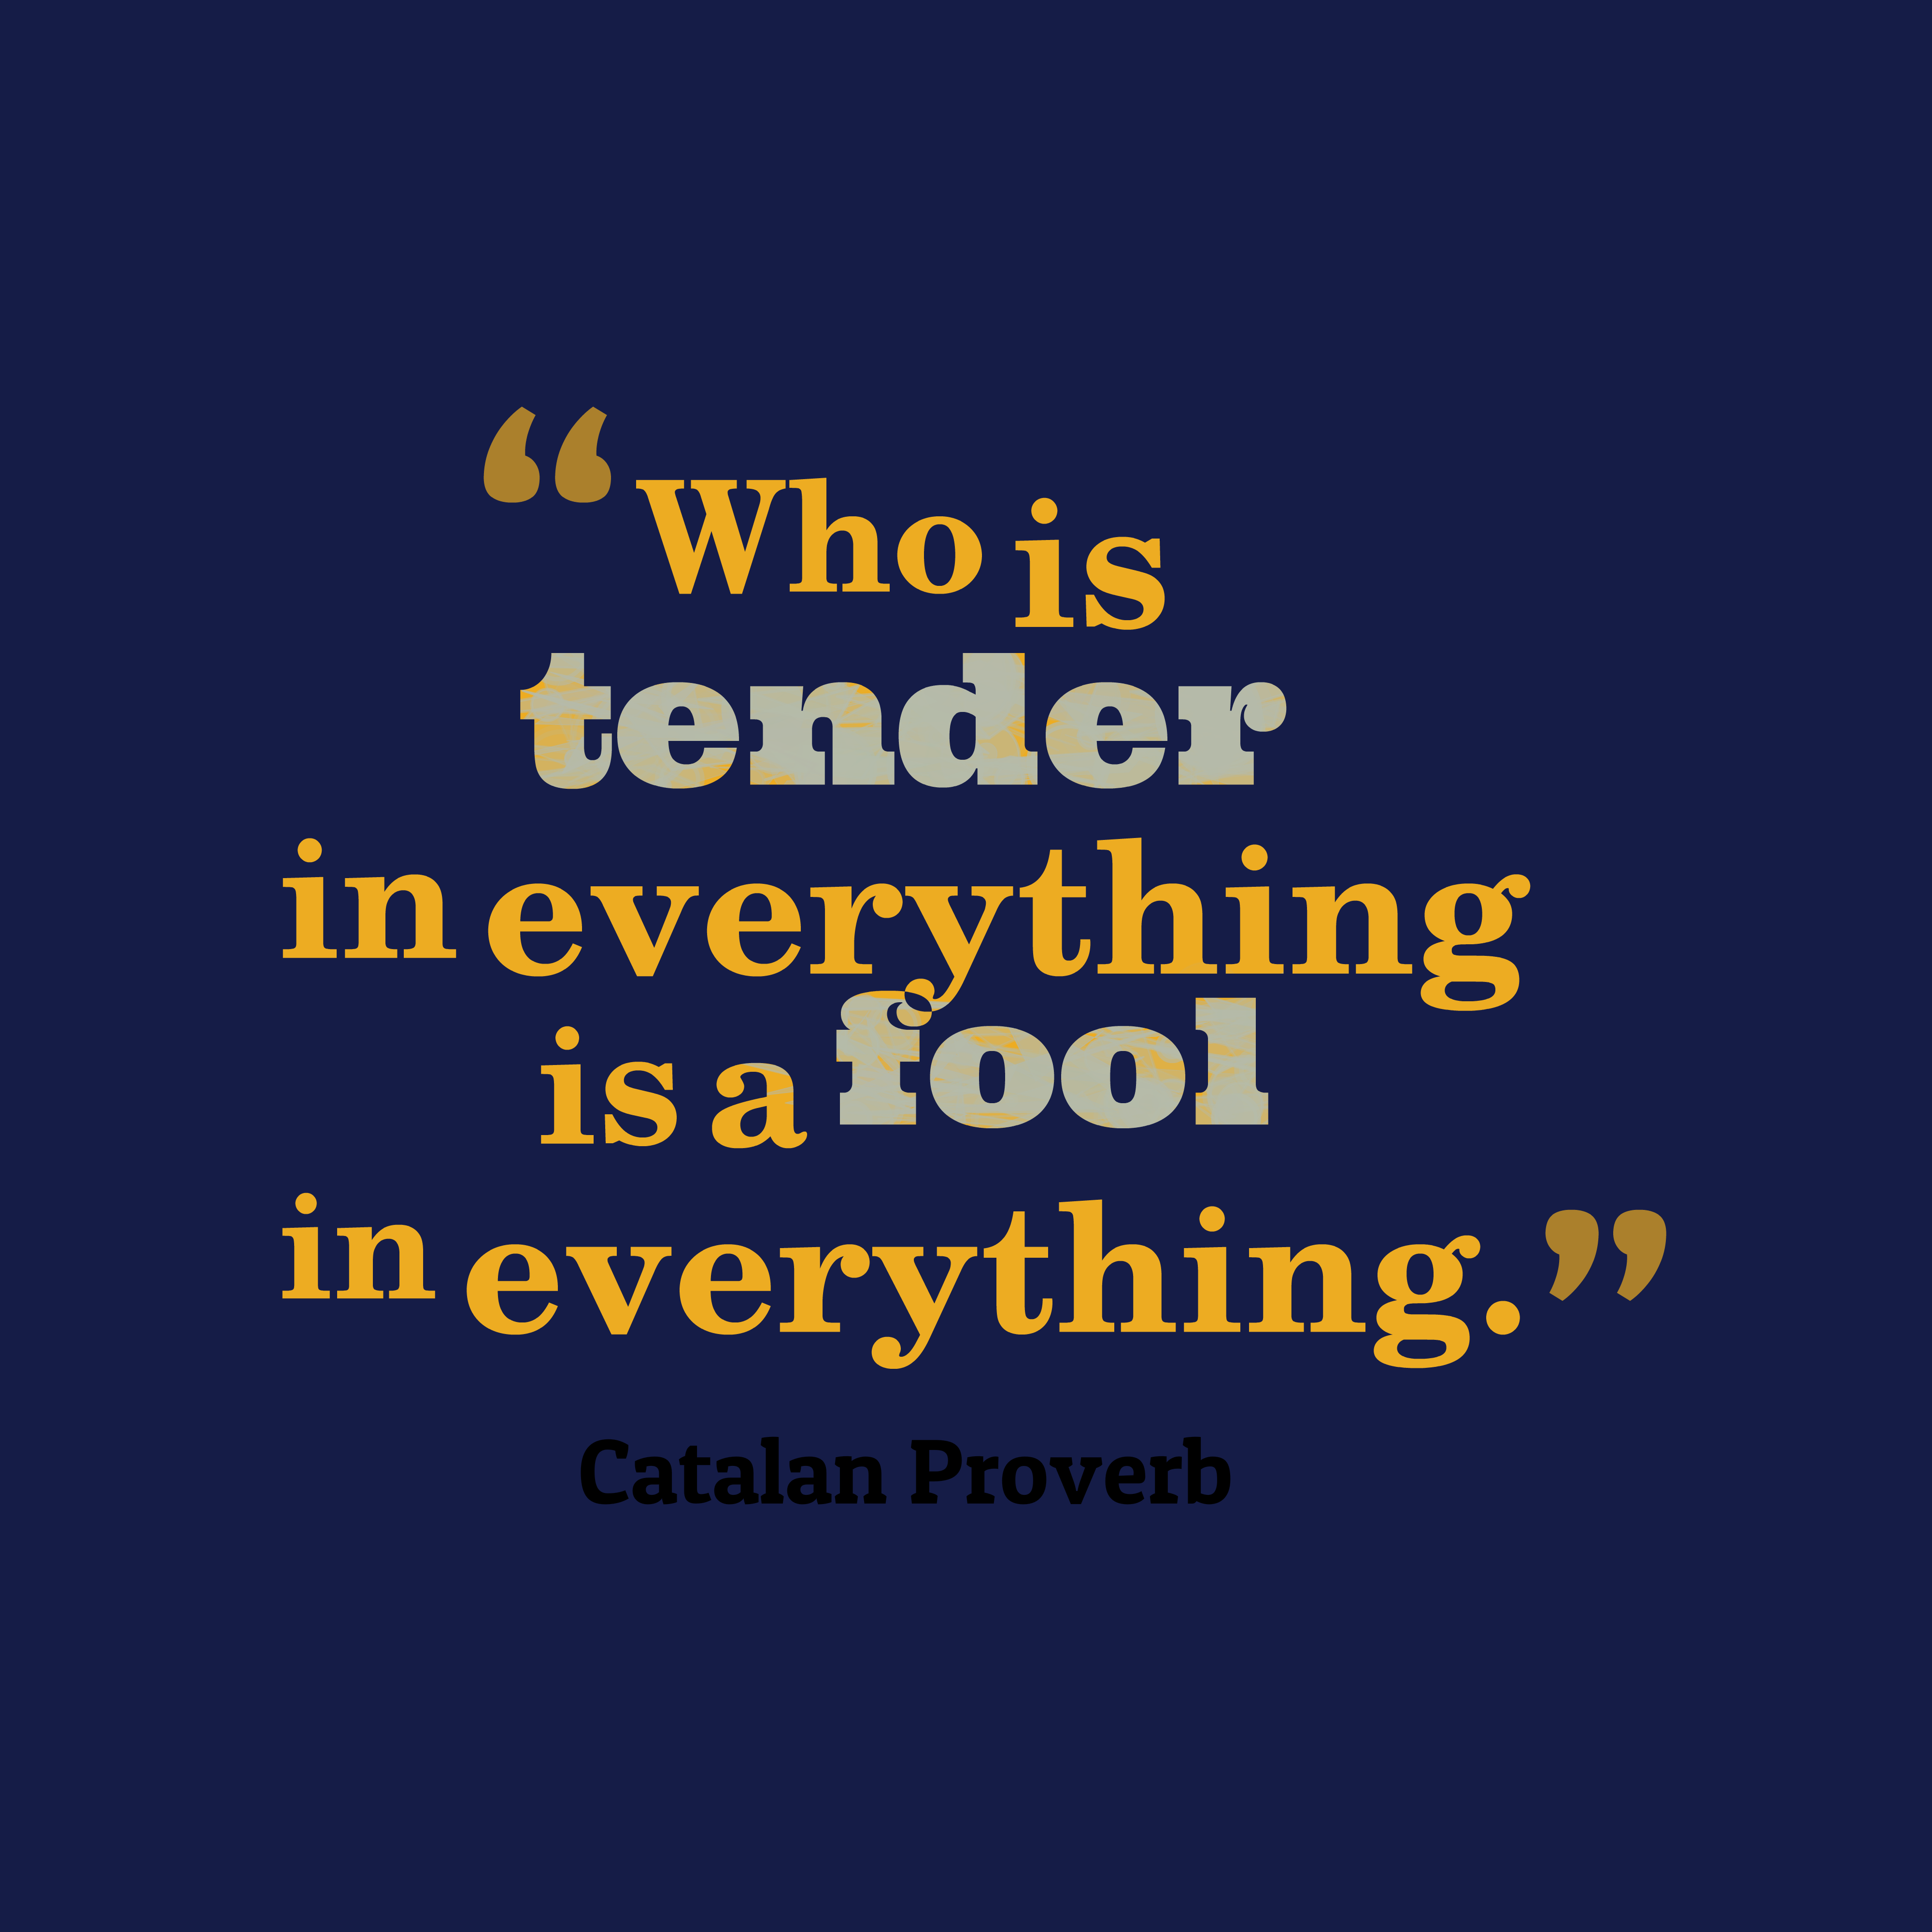 Quotes image of Who is tender in everything is a fool in everything.